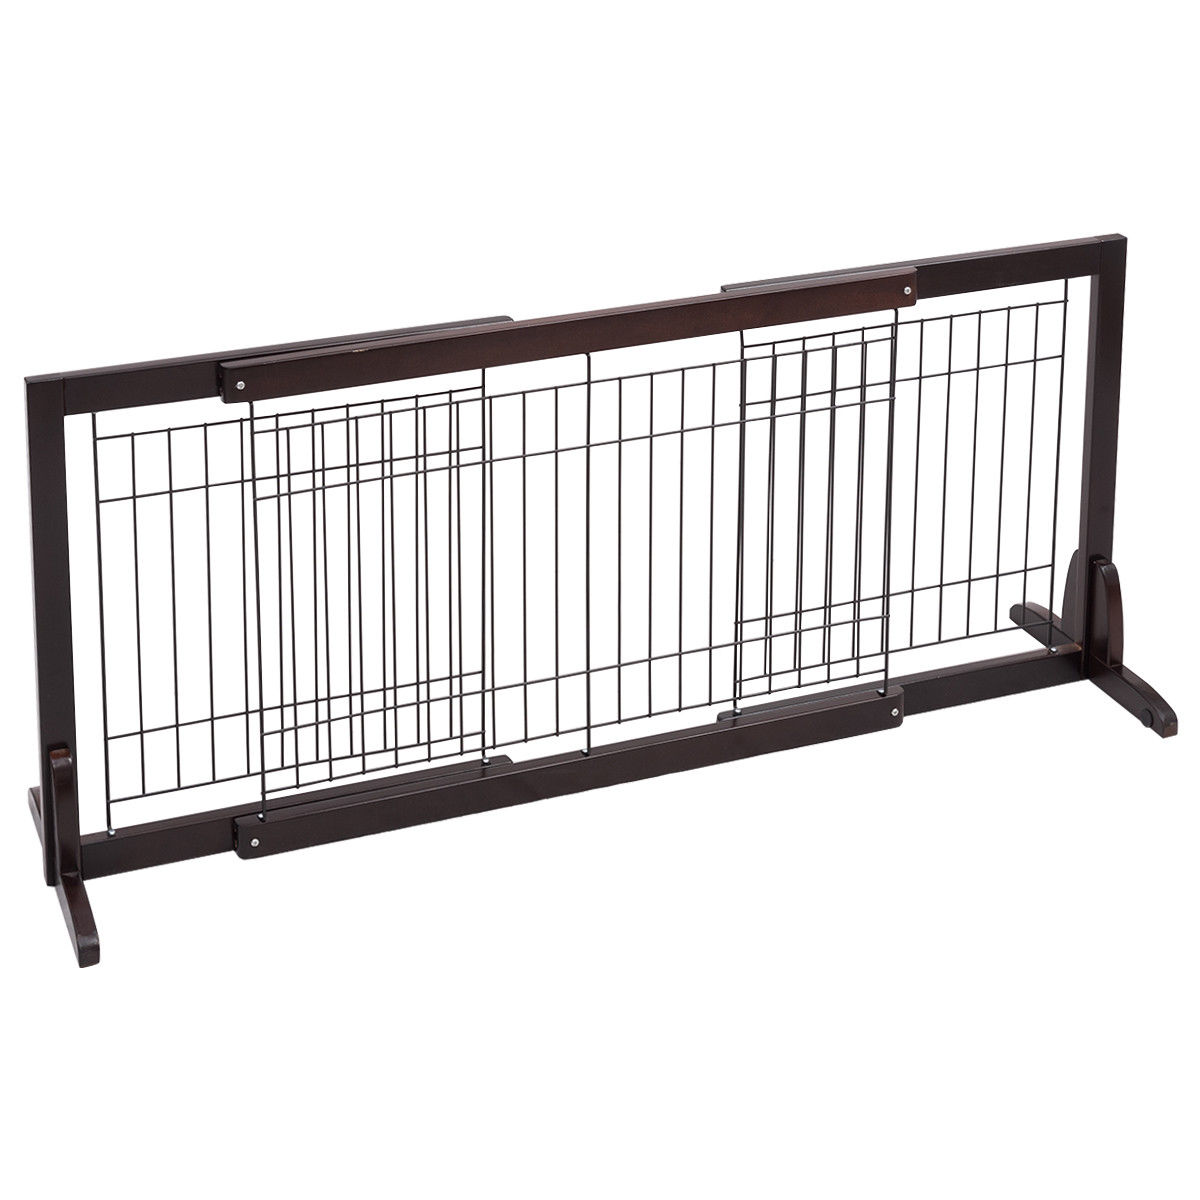 Adjustable Solid Wood Free Stand Dog Gate Pet Fence